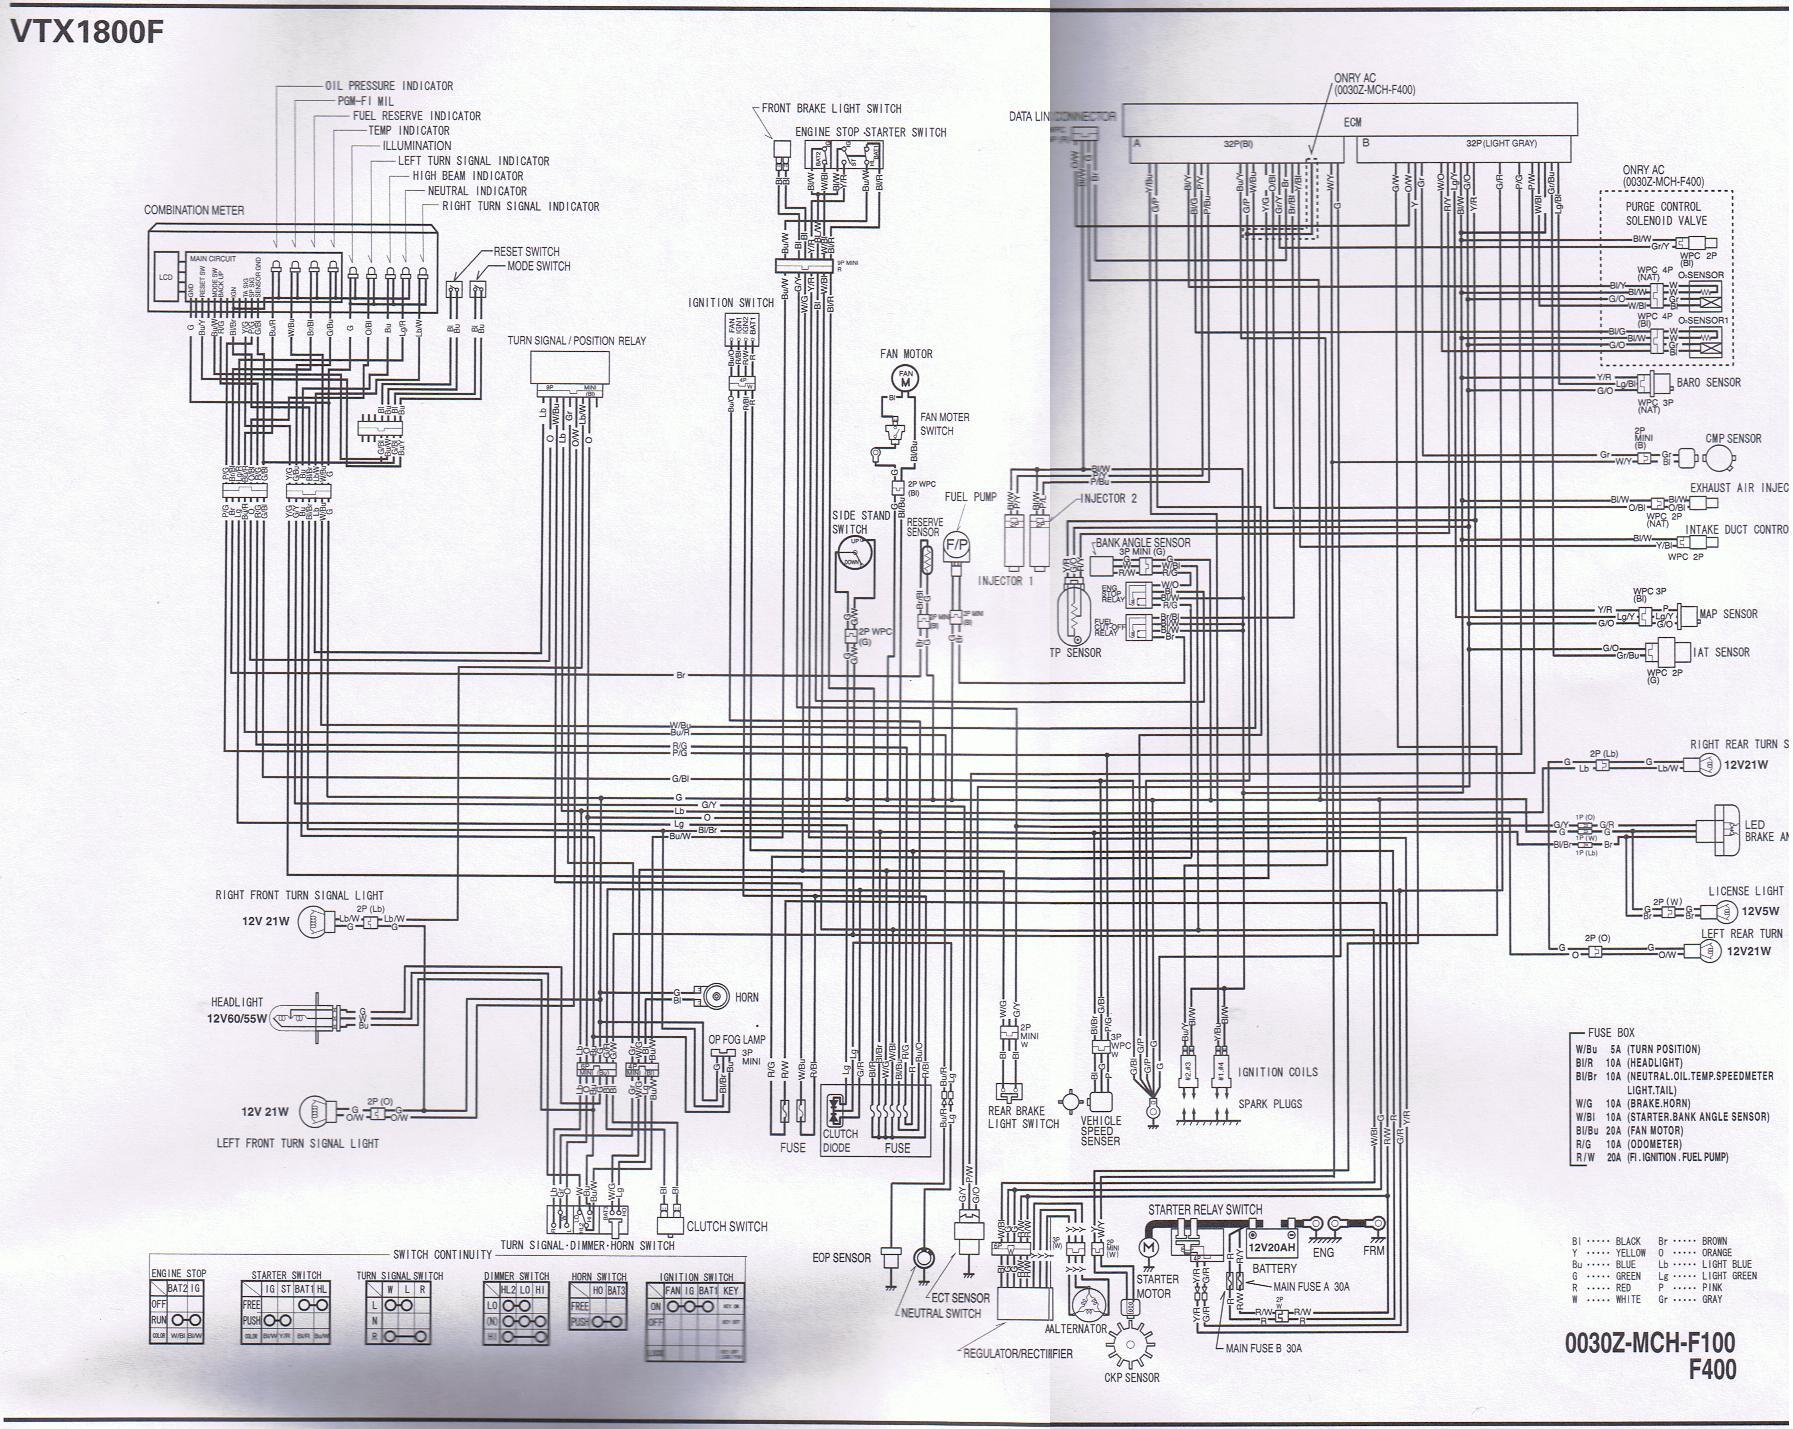 motorcycle wire schematics bareass choppers motorcycle tech pages Honda Valkyrie Engine 06 vtx 1800n schematic